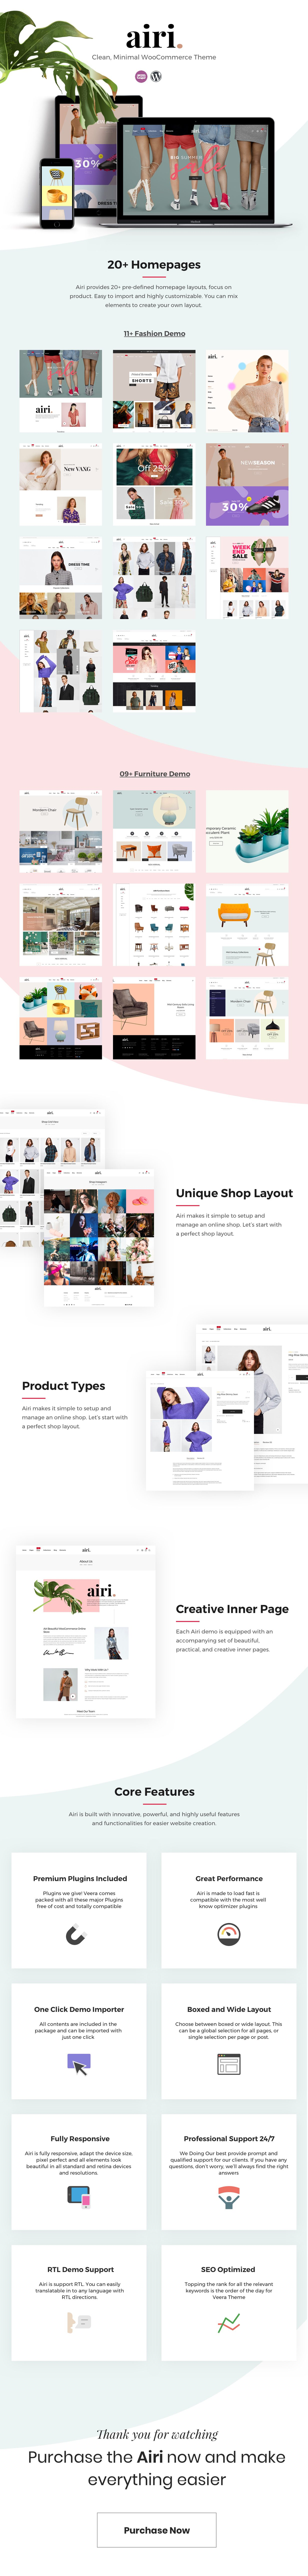 Airi - Clean, Minimal WooCommerce Theme - 2